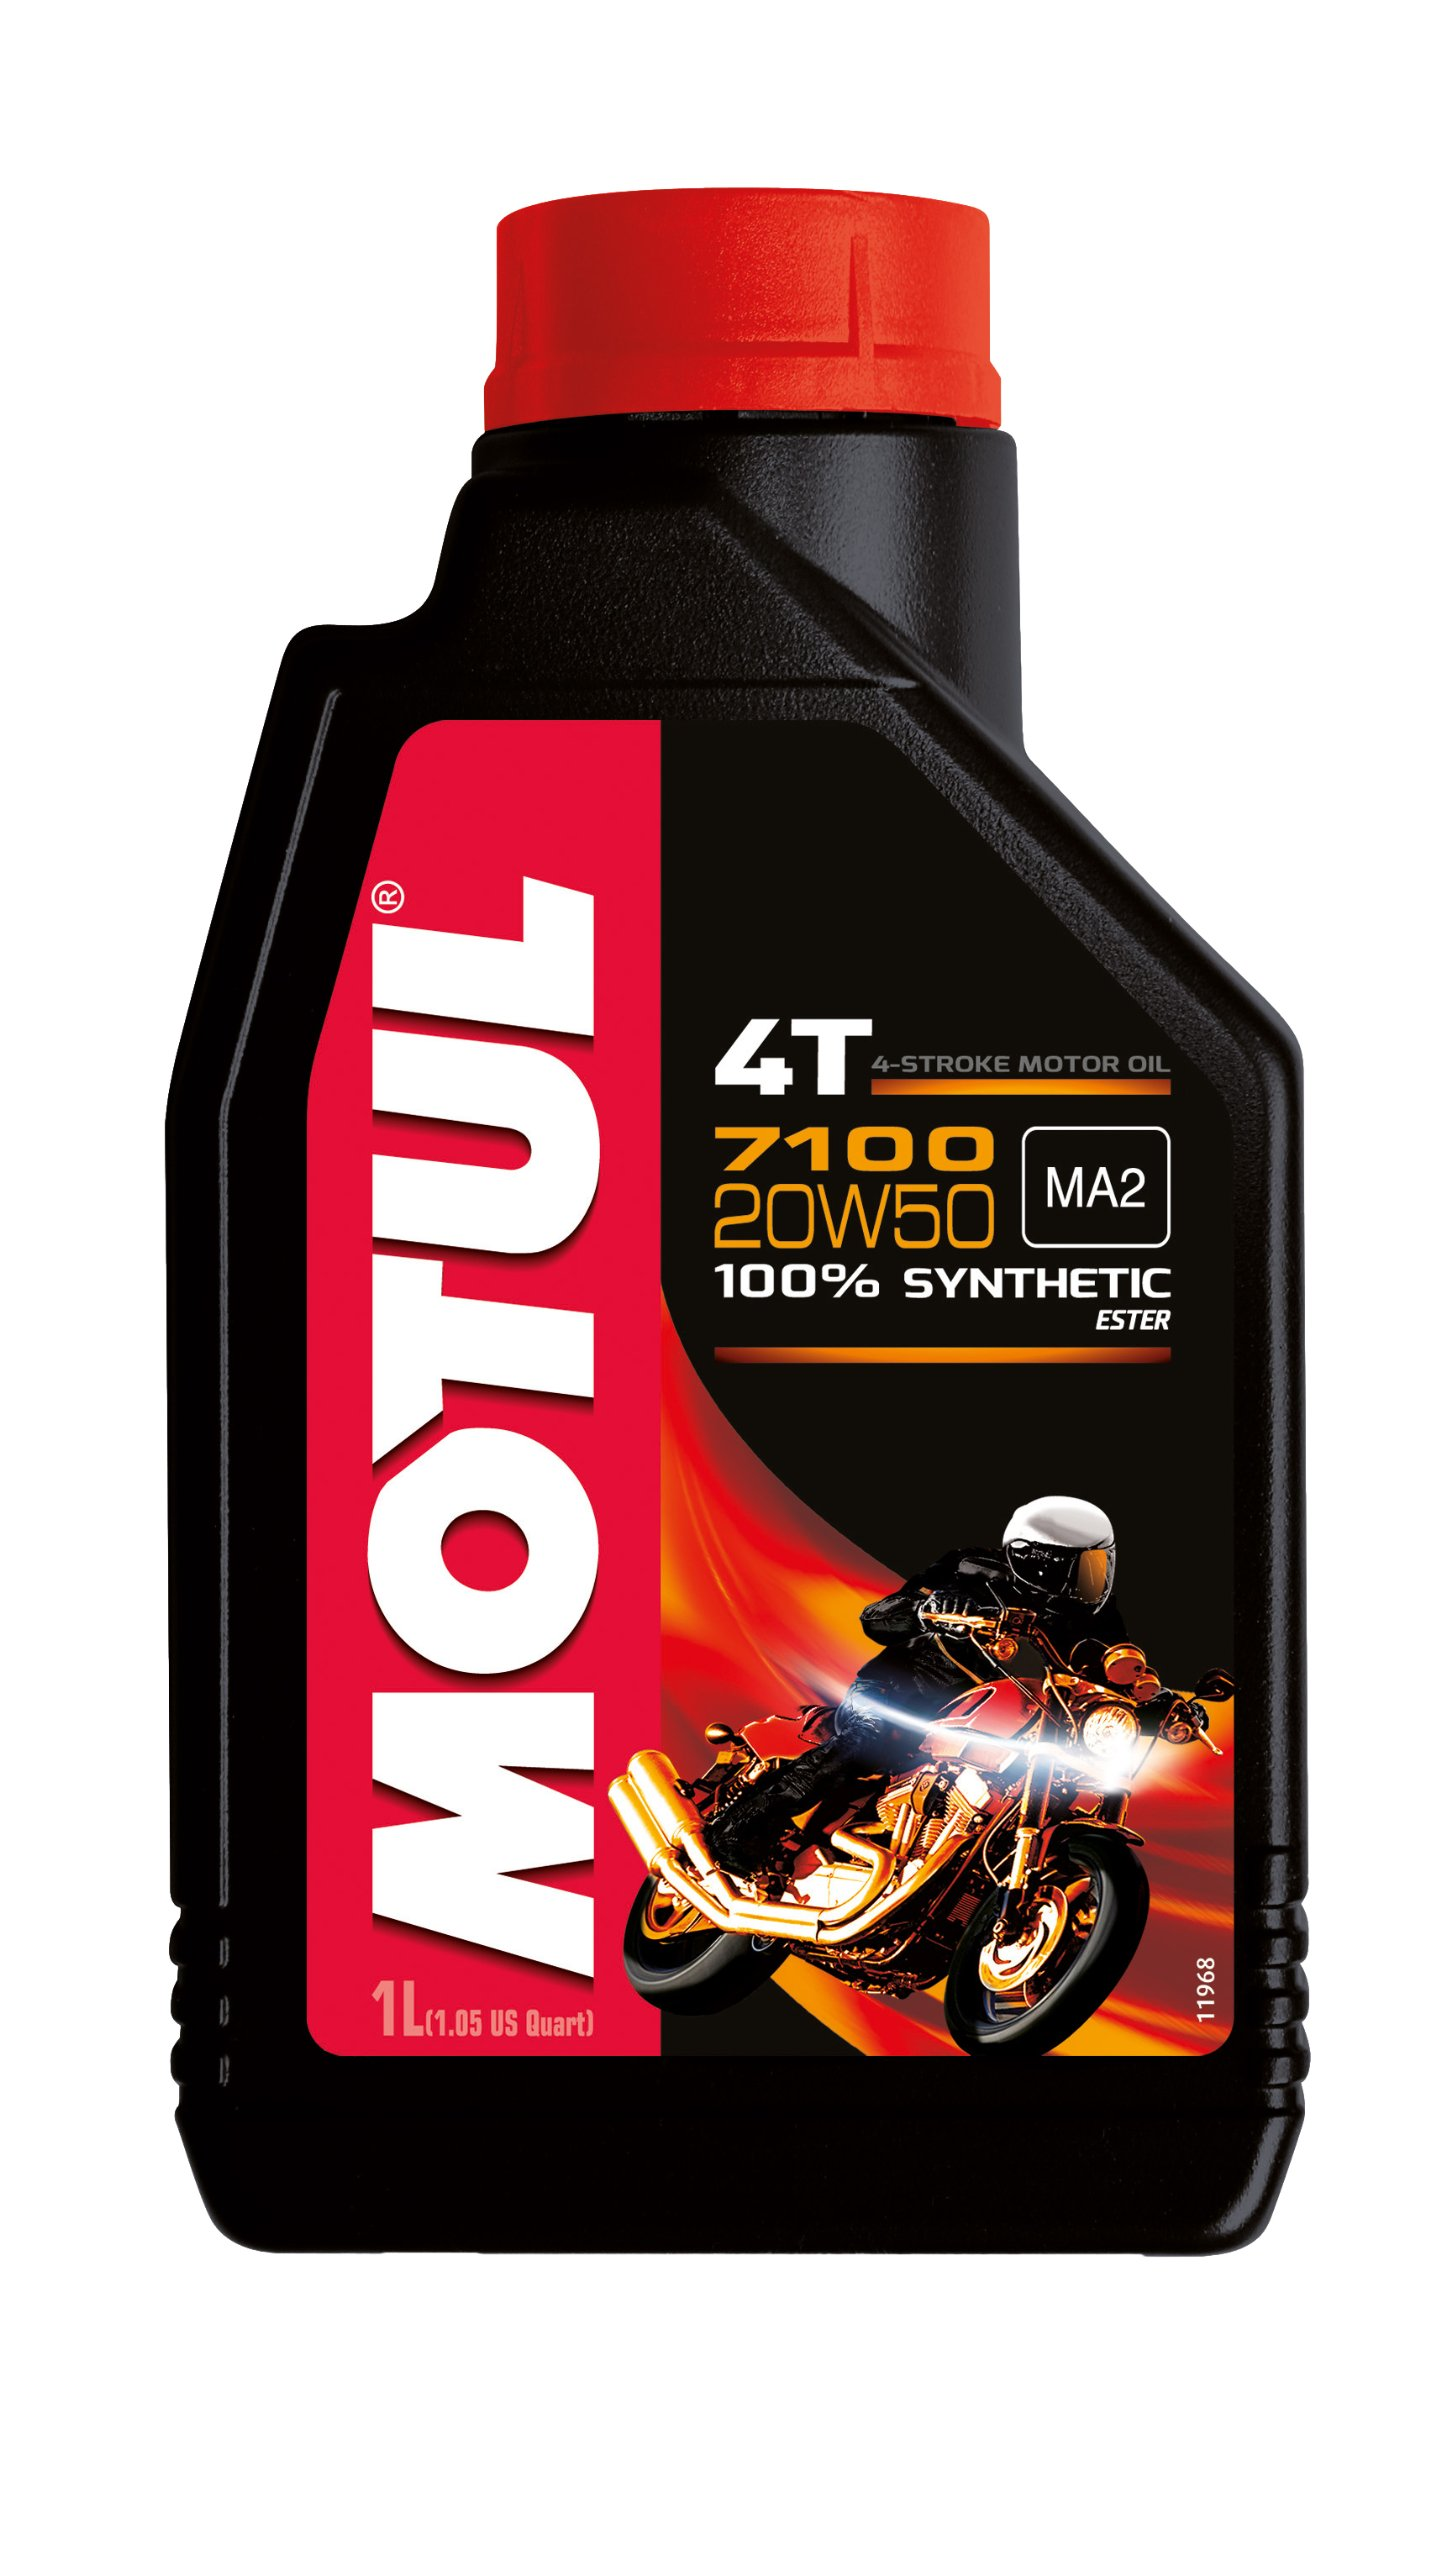 Motul 104103 7100 4T Fully Synthetic Ester 20W-50 API SN Petrol Engine Oil for Bikes (1 L) product image